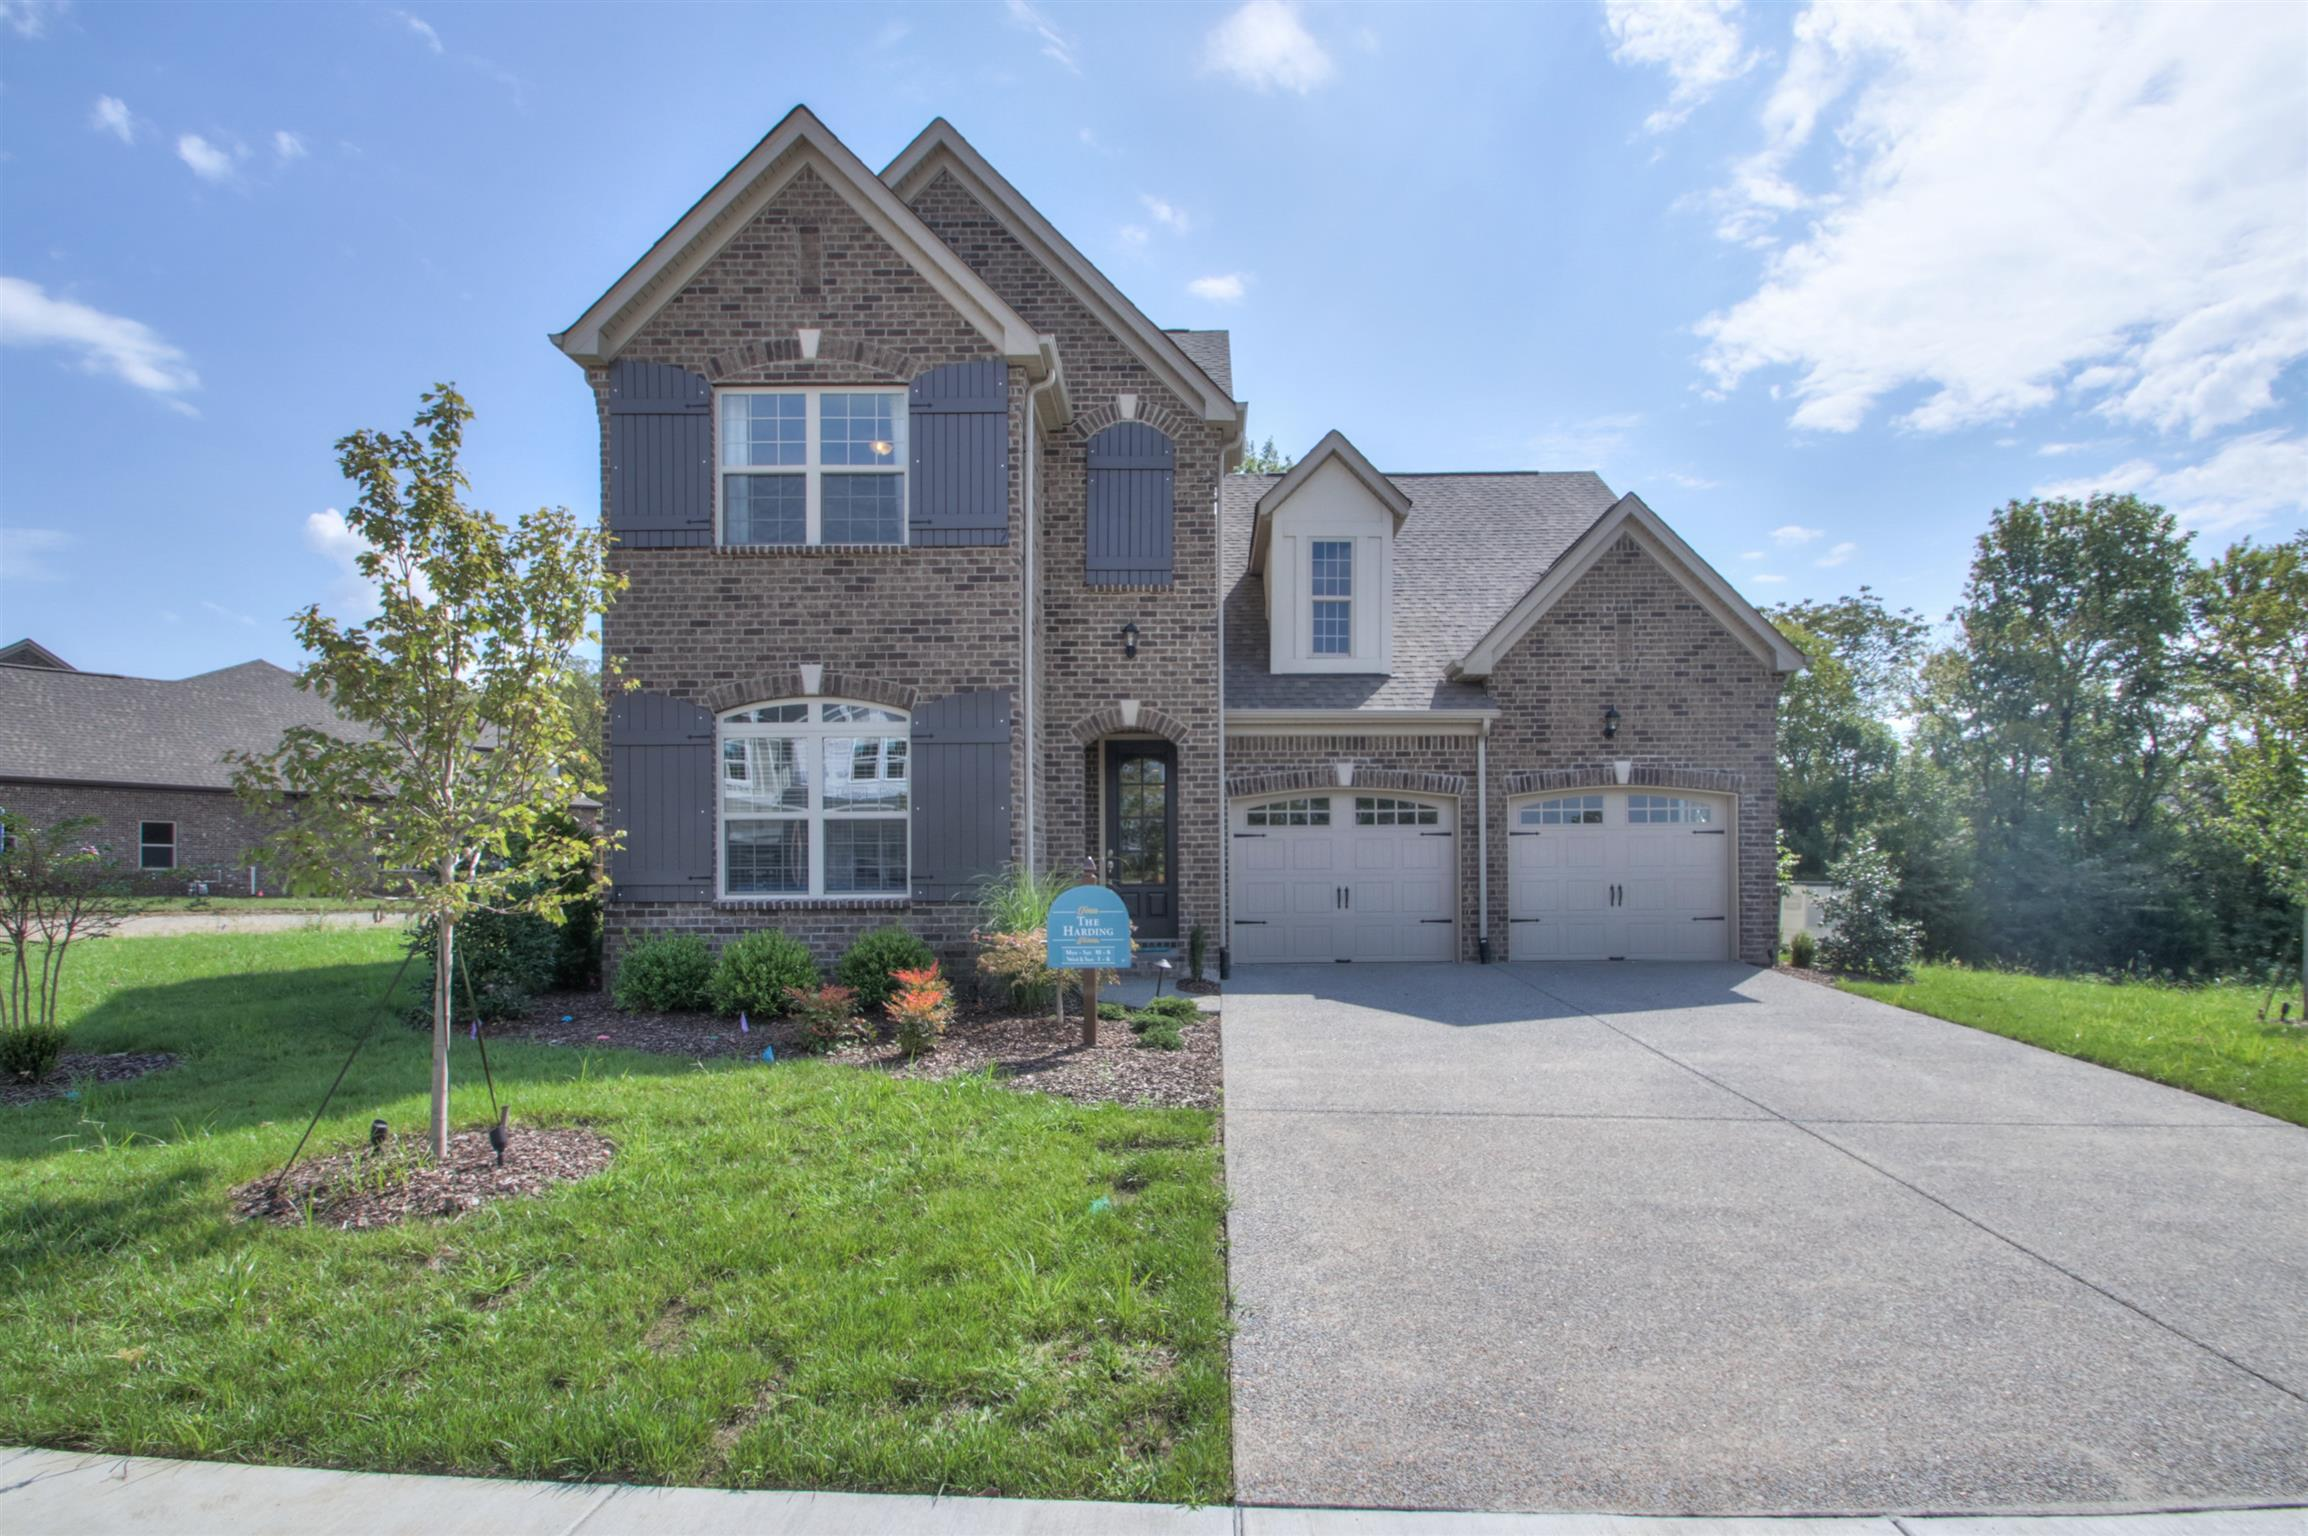 122 Monarchos Drive - Lot 260, Gallatin in Sumner County County, TN 37066 Home for Sale